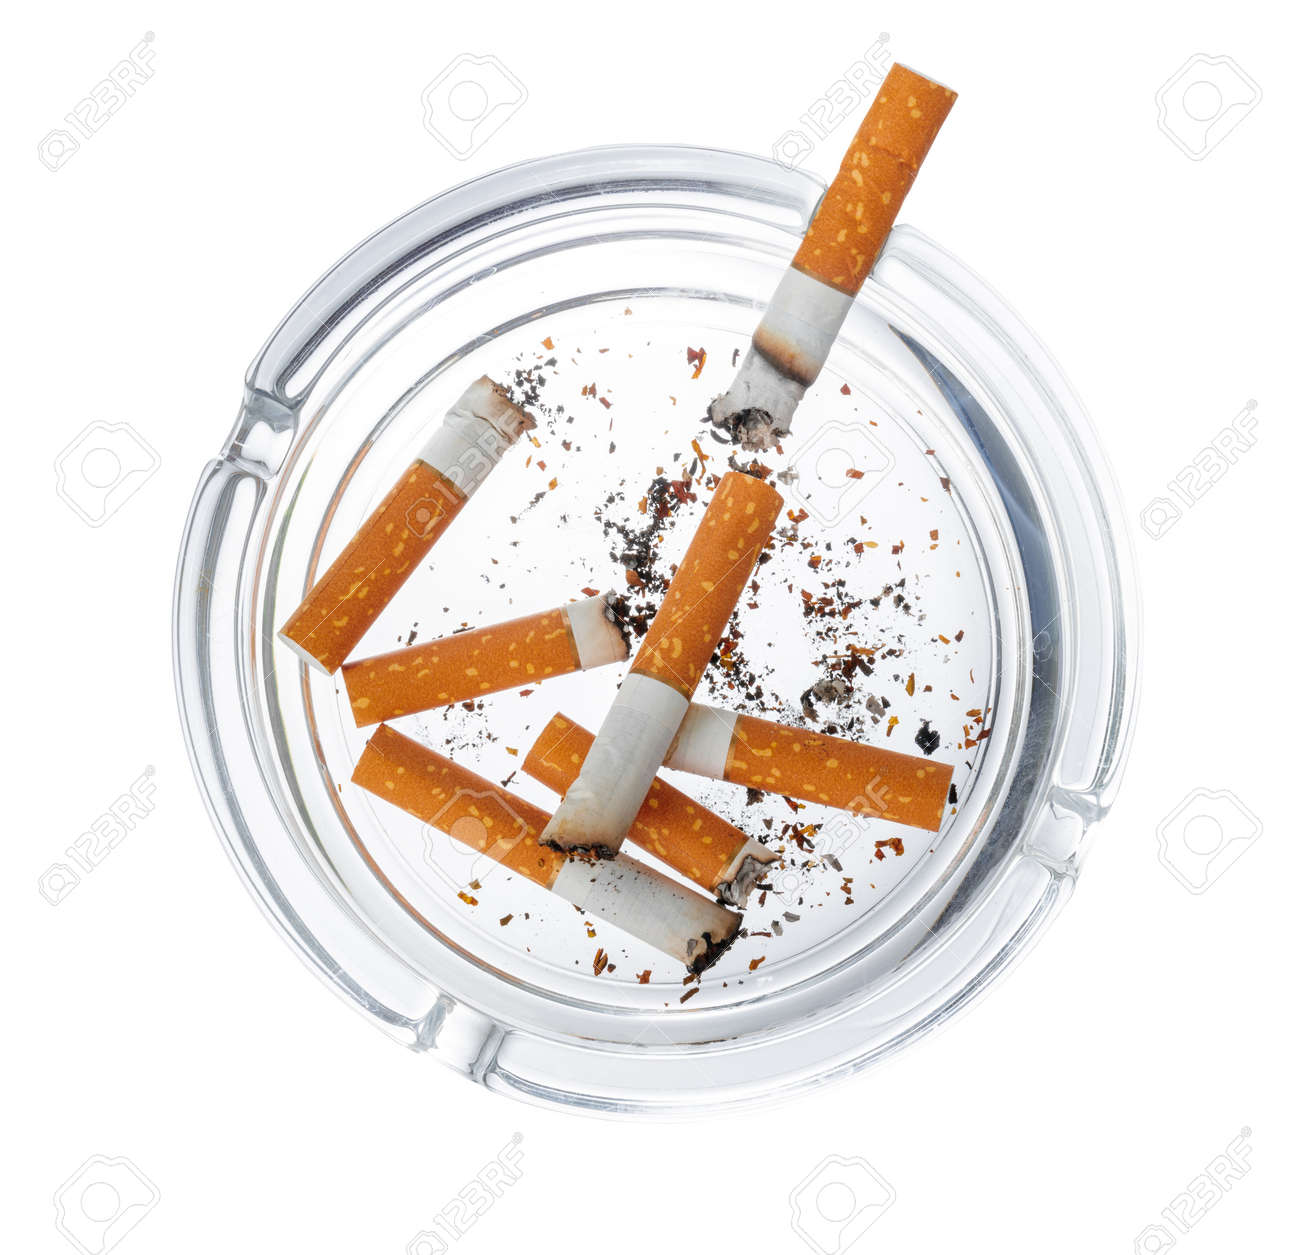 Burnt cigarette butts in an ash tray isolated on white - 155506367